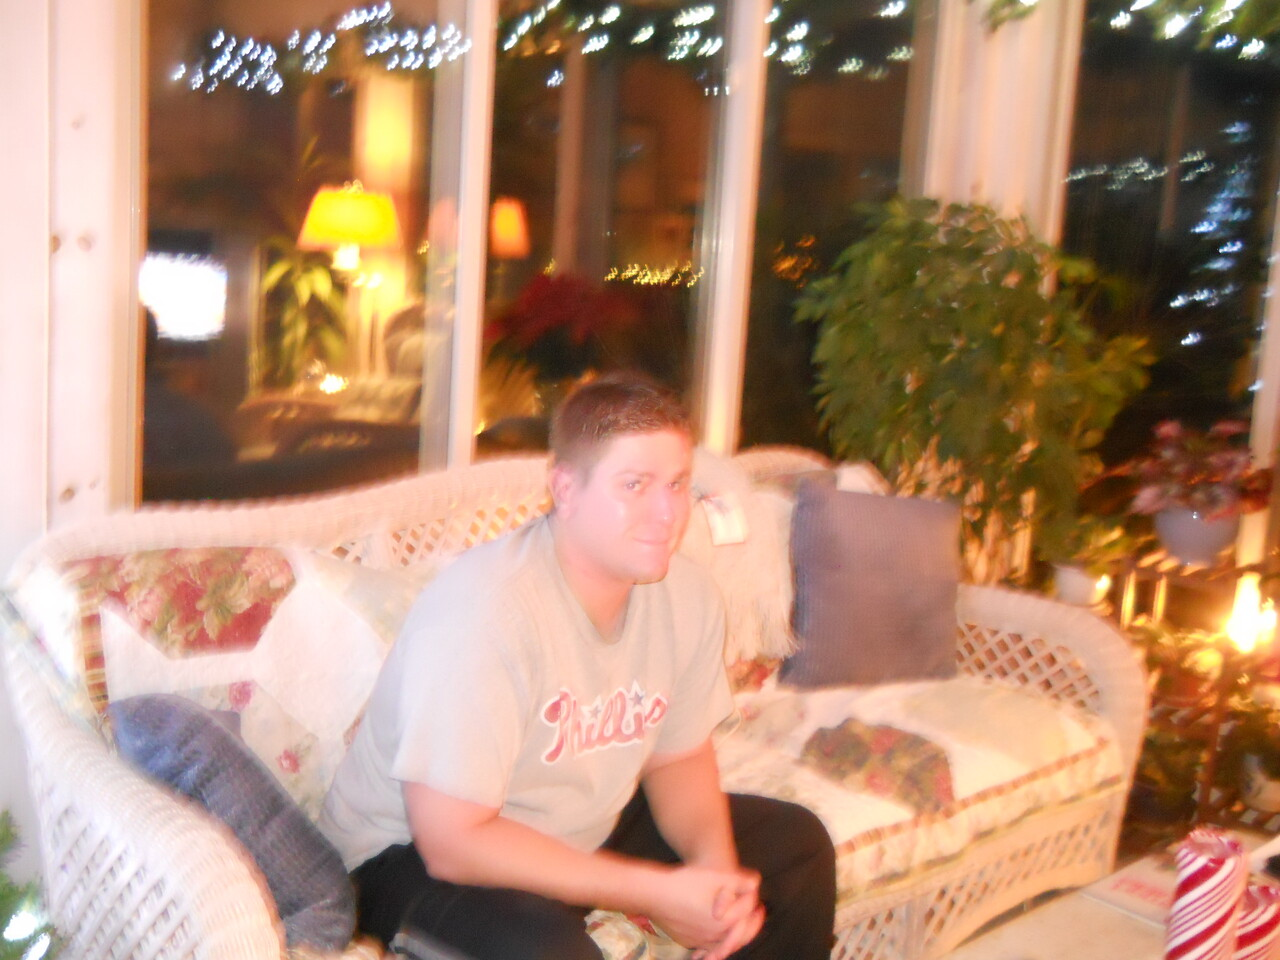 Matt on Thanksgiving night